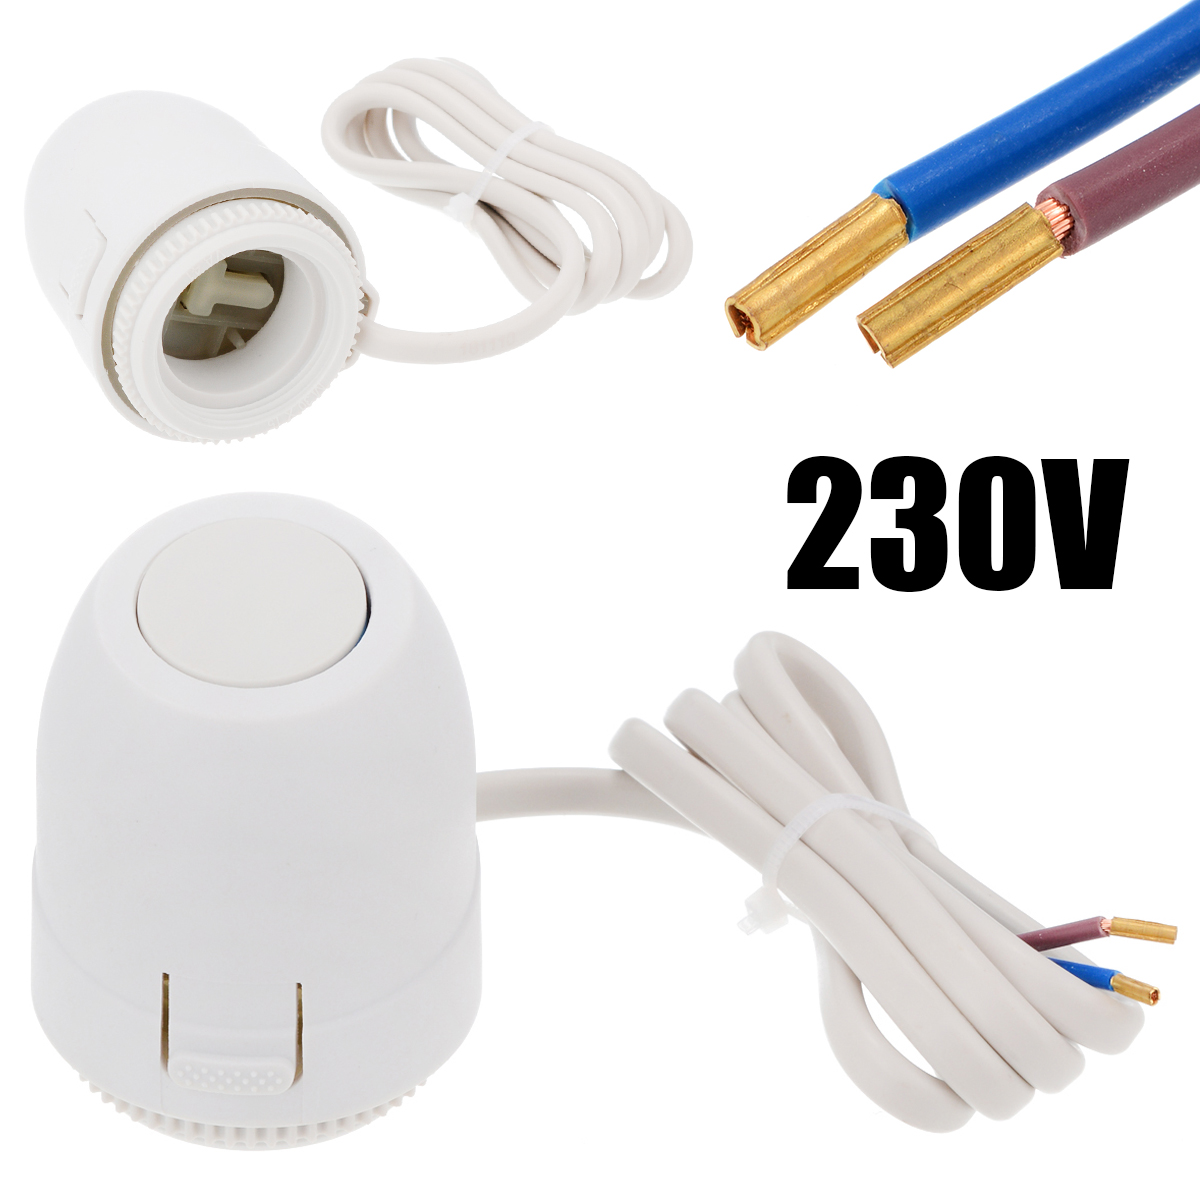 NC AC 230V Electric Thermal Actuator Manifold Floor Heating Valve Water Heating System Controller For Floor Heating Thermostat